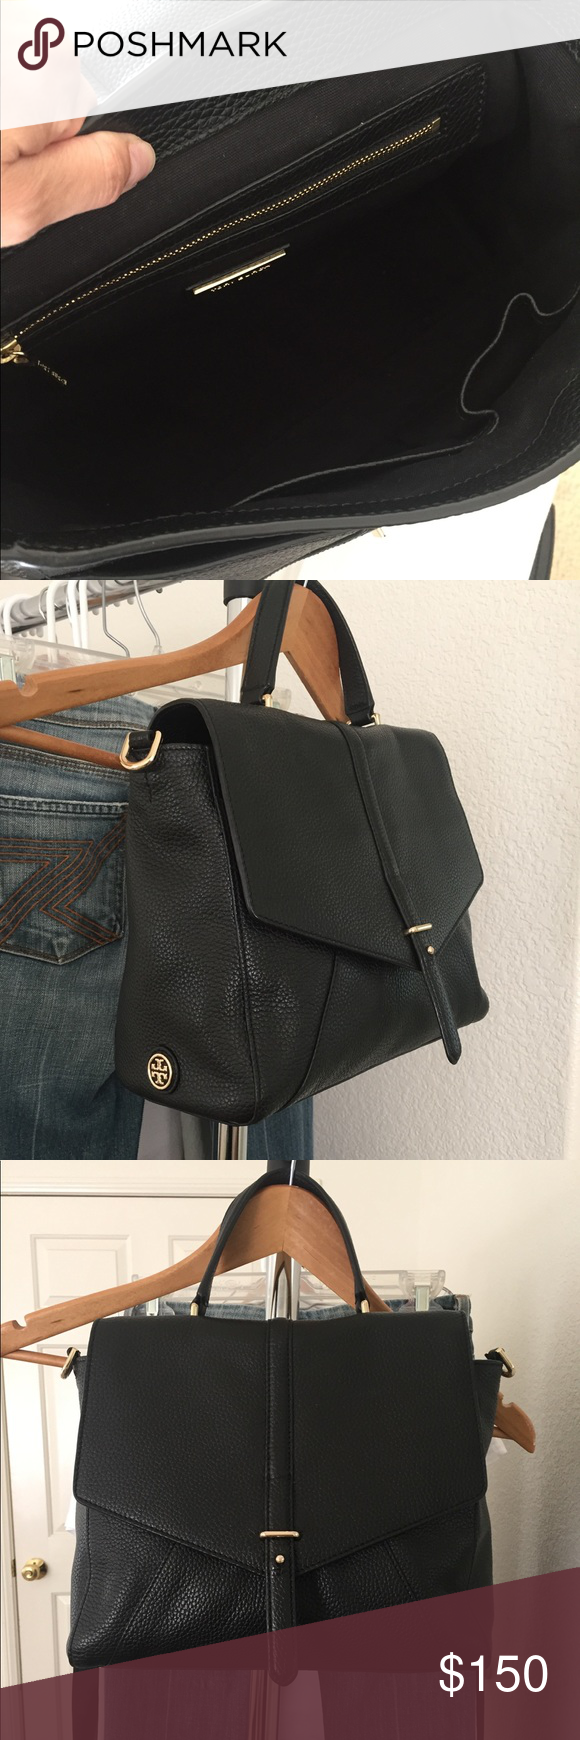 8286ac0ada49 Tory Burch 797 Satchel black bag. Medium size 💯 authentic. Pre owed. Still  in great condition! Can also be carried as a cross-body. No trades.